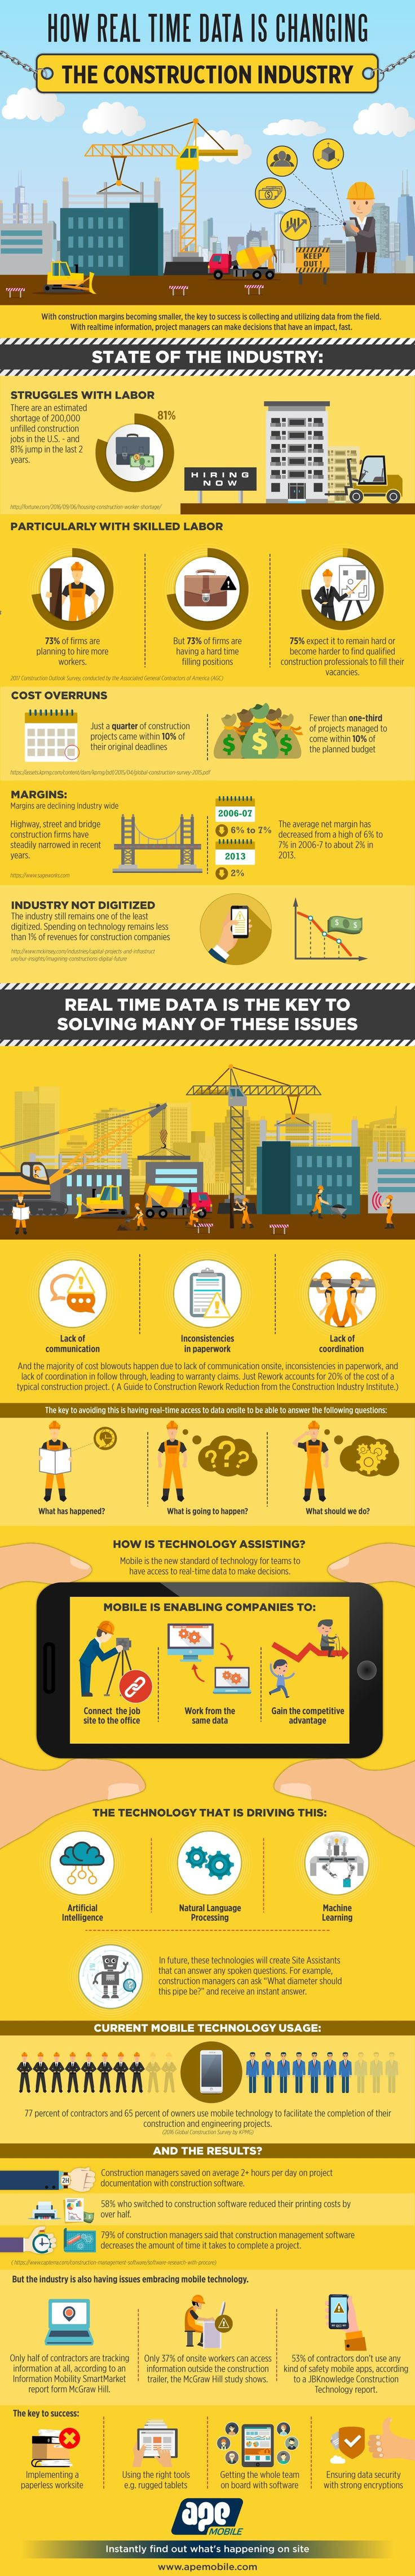 Real Time Data Changing the Construction Industry